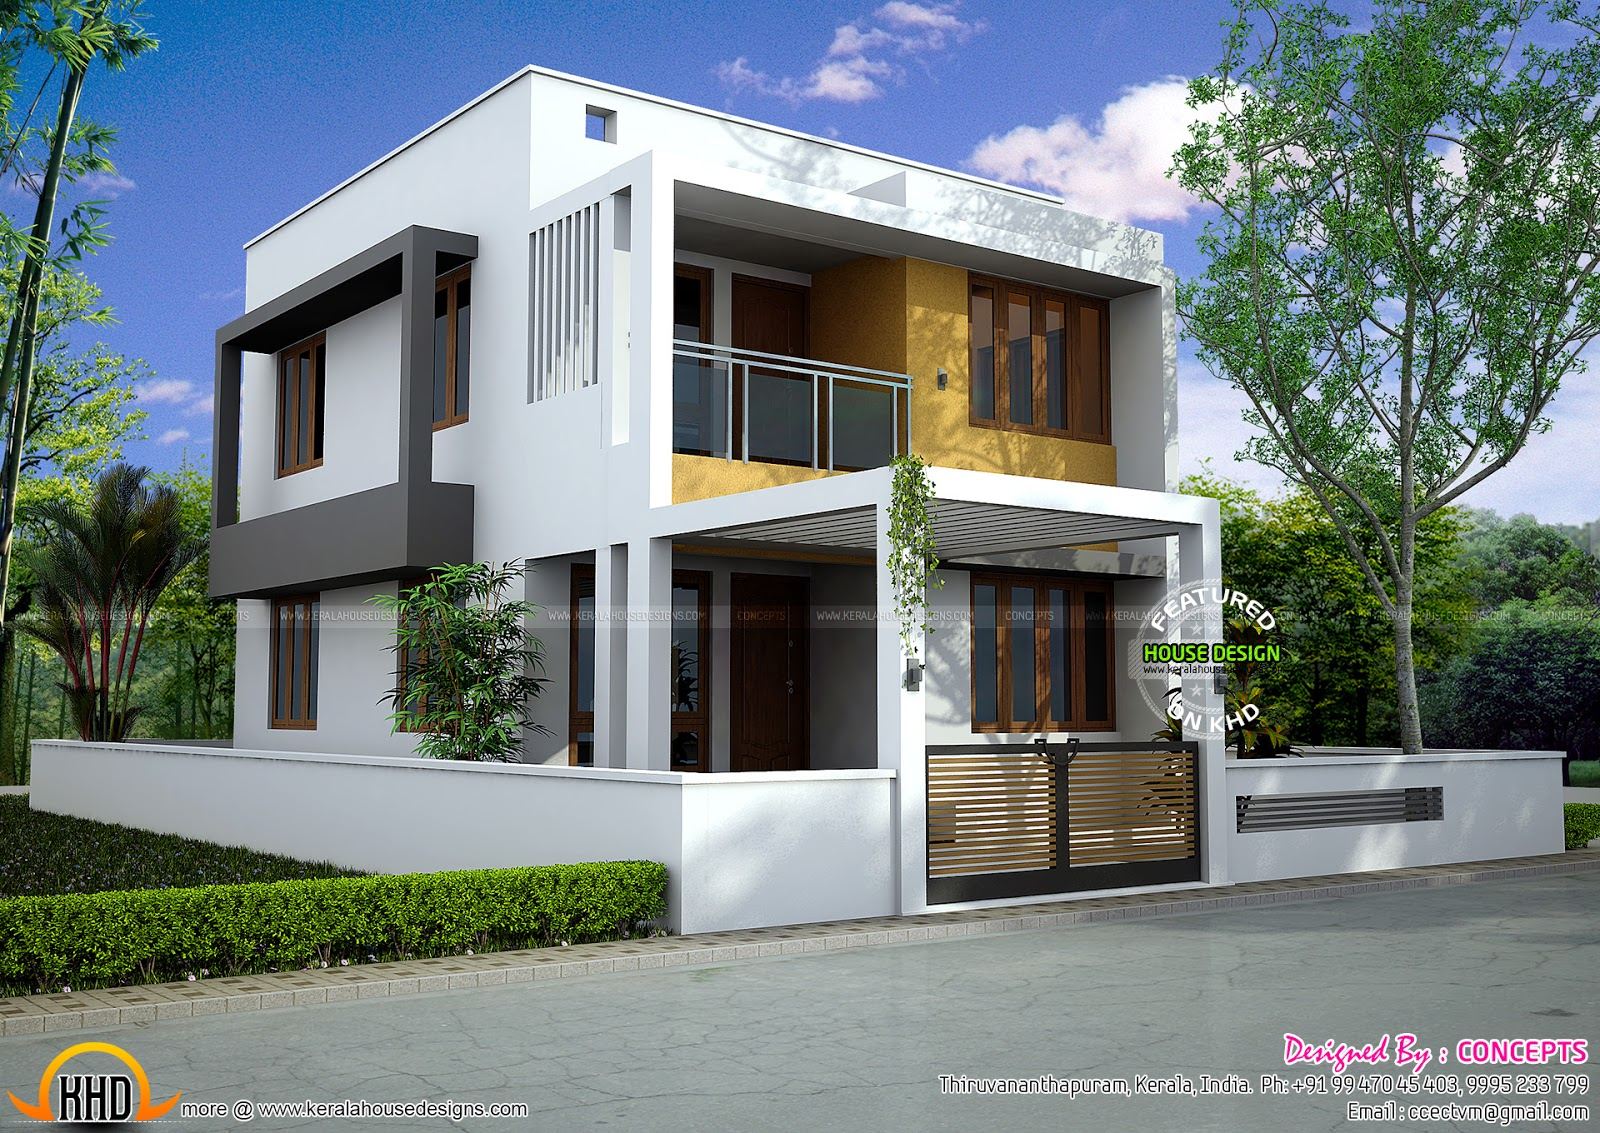 Floor plan of modern 3 bedroom house kerala home design for Modern house designs and floor plans in india